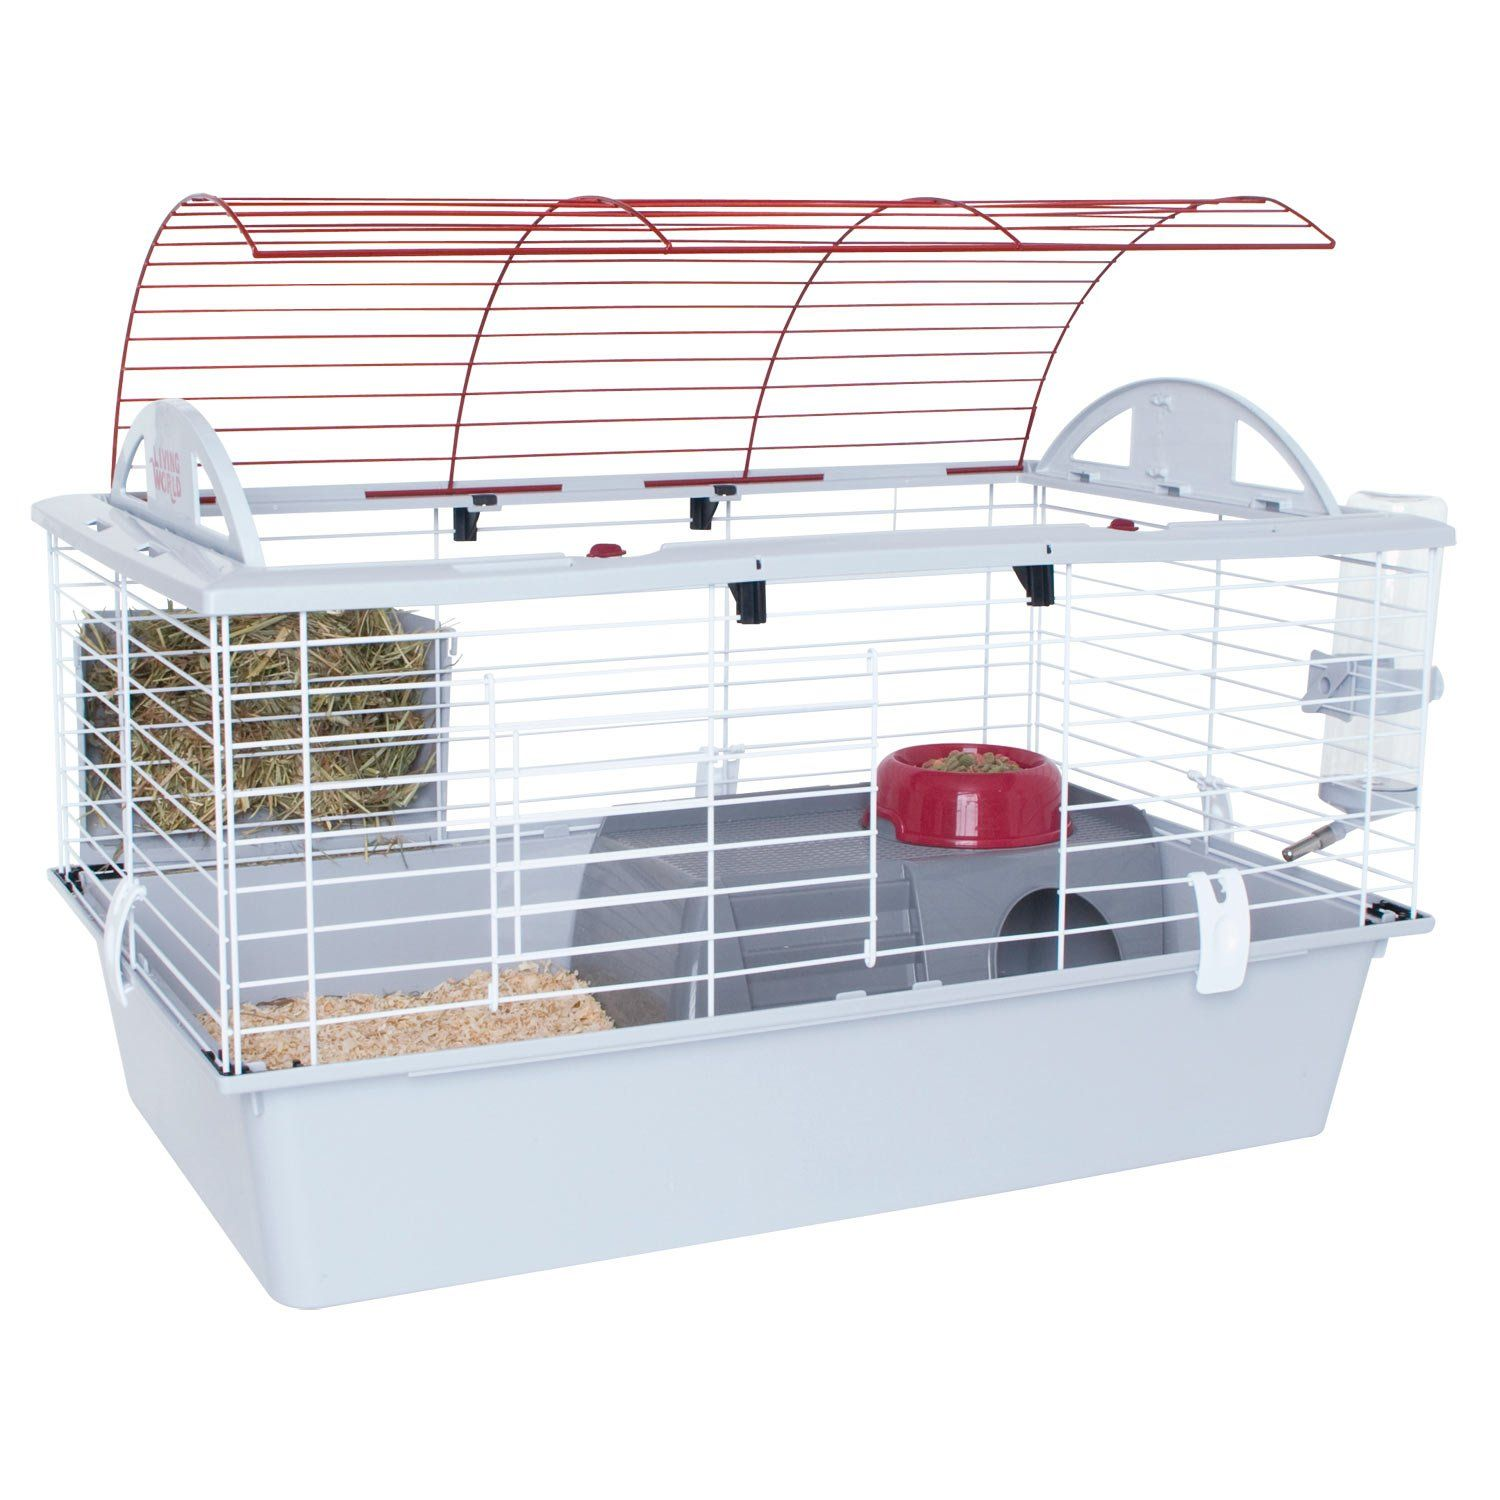 Hagen Living World Deluxe Habitat Medium Petco Store Small